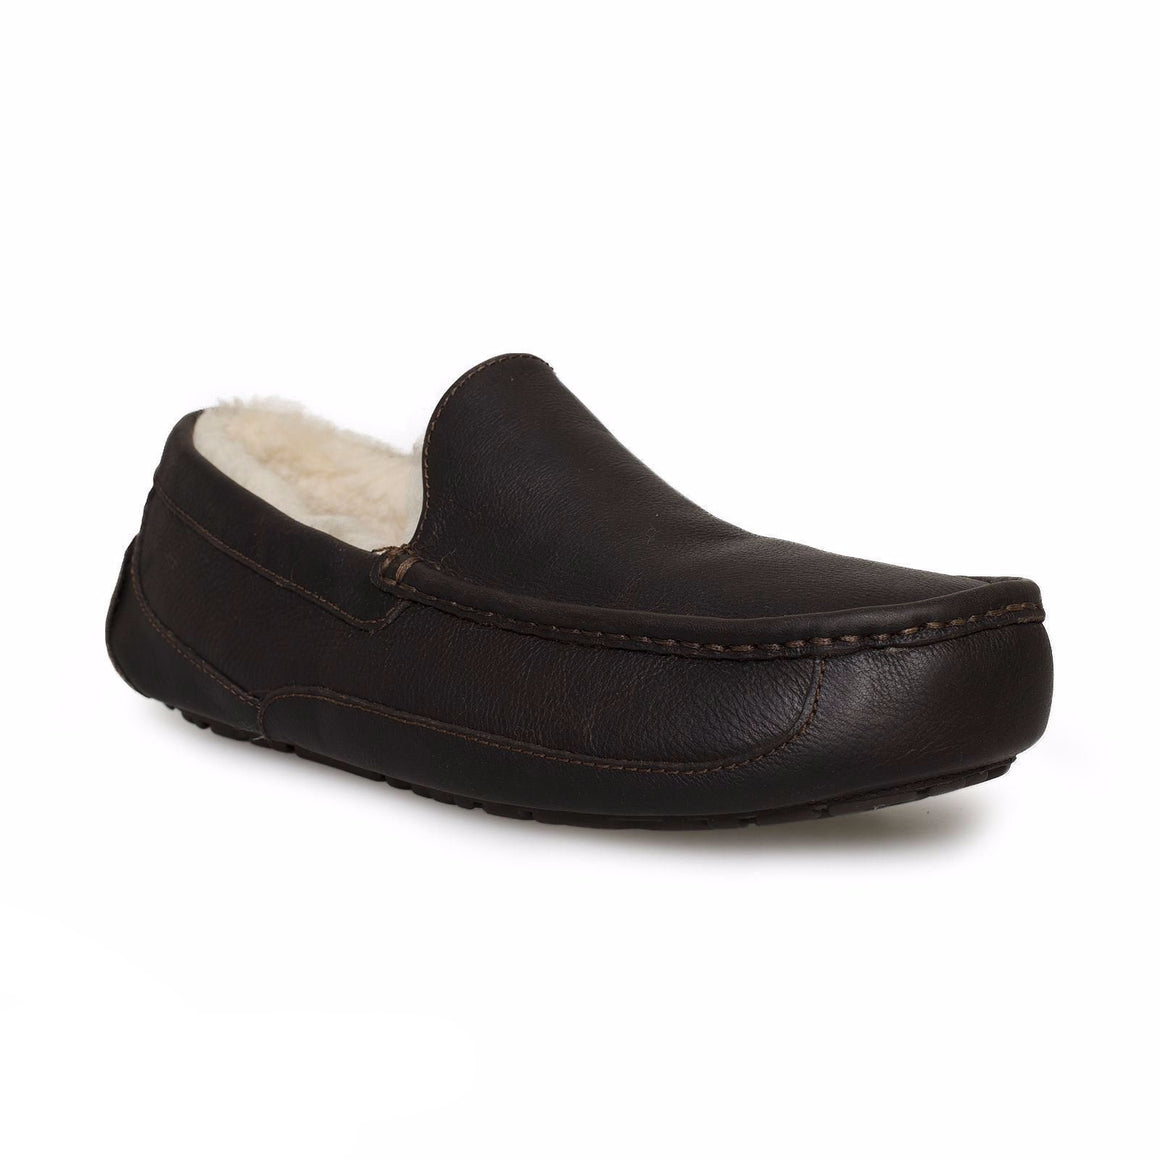 UGG Ascot China Tea Slippers